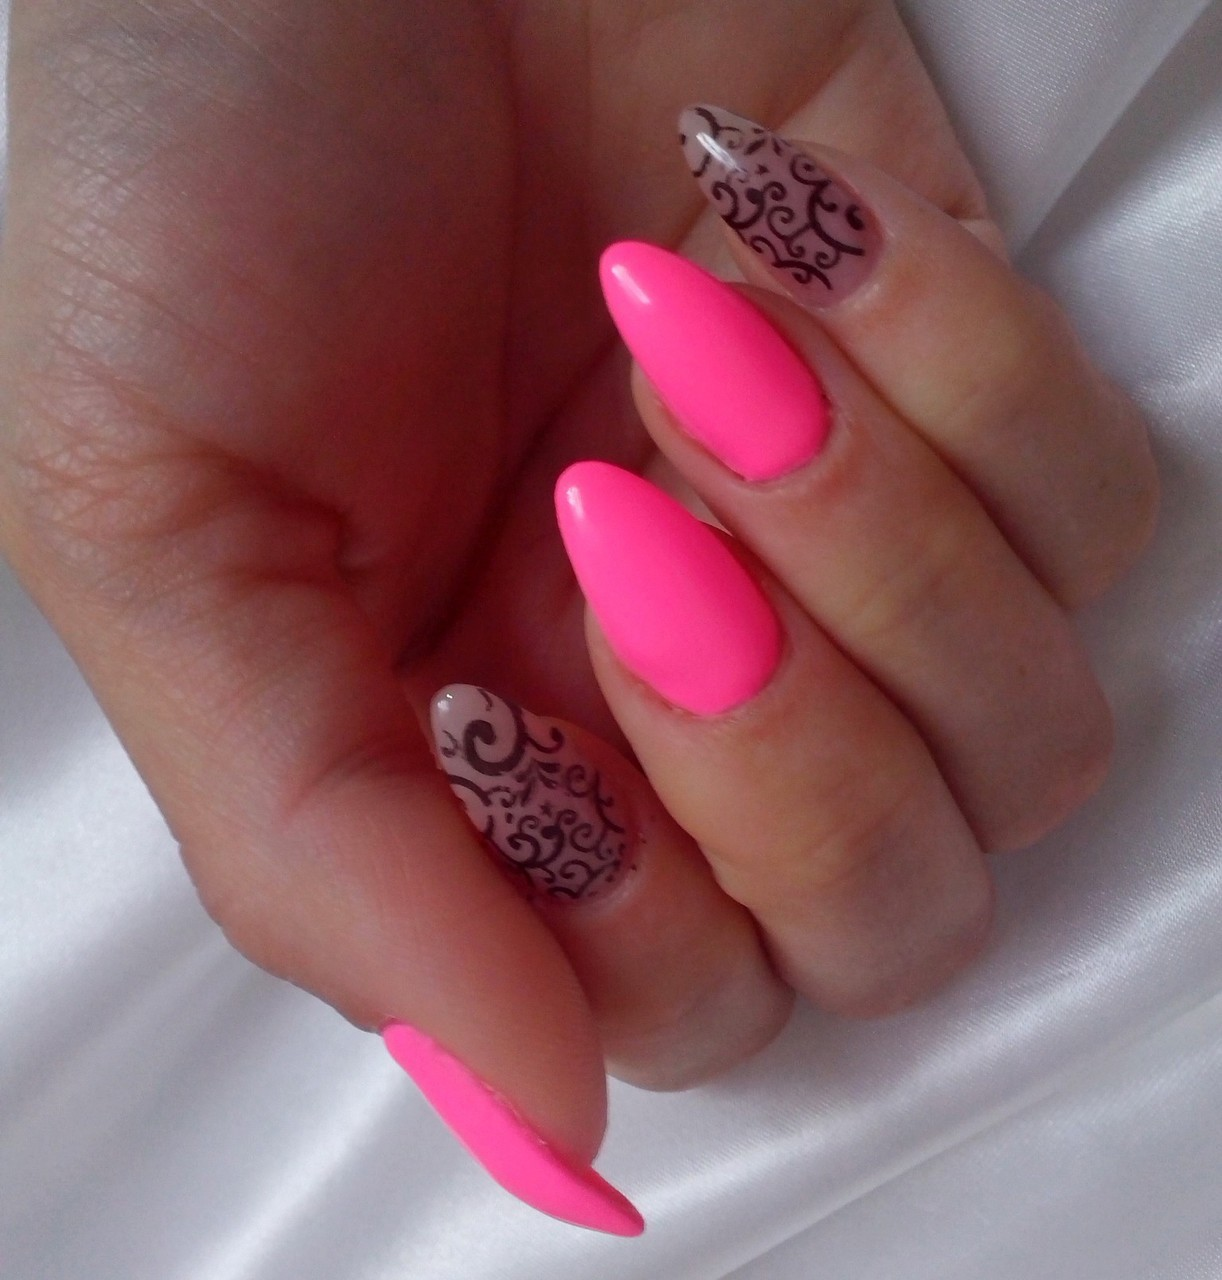 Bridal cute fabulous friend hot lace look my nail nails pink